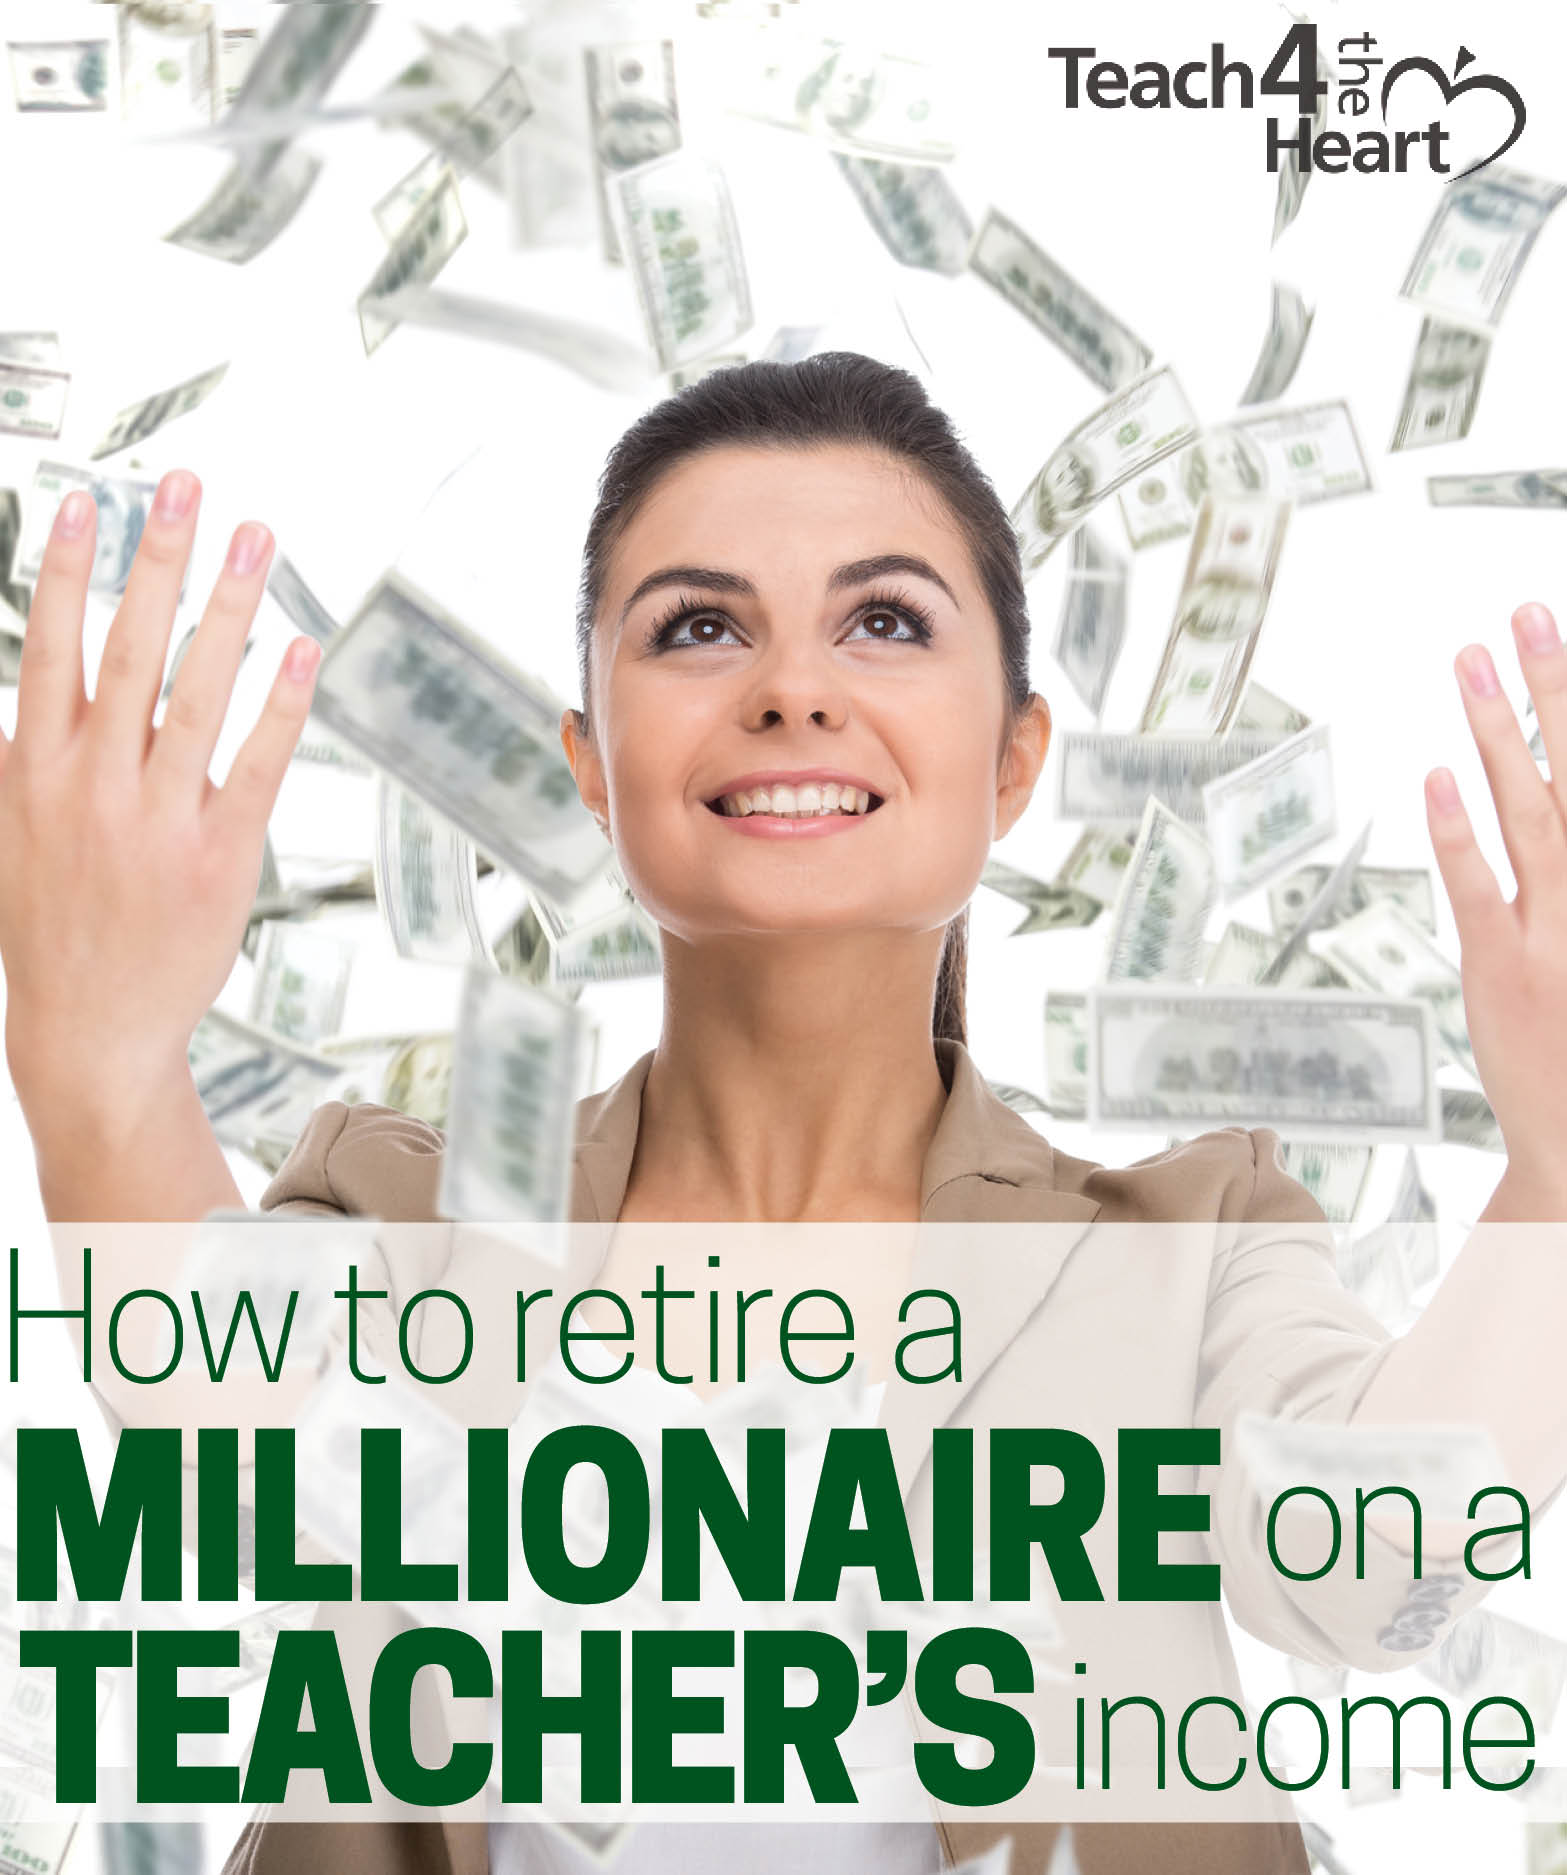 how to retire a millionaire on a teacher's income